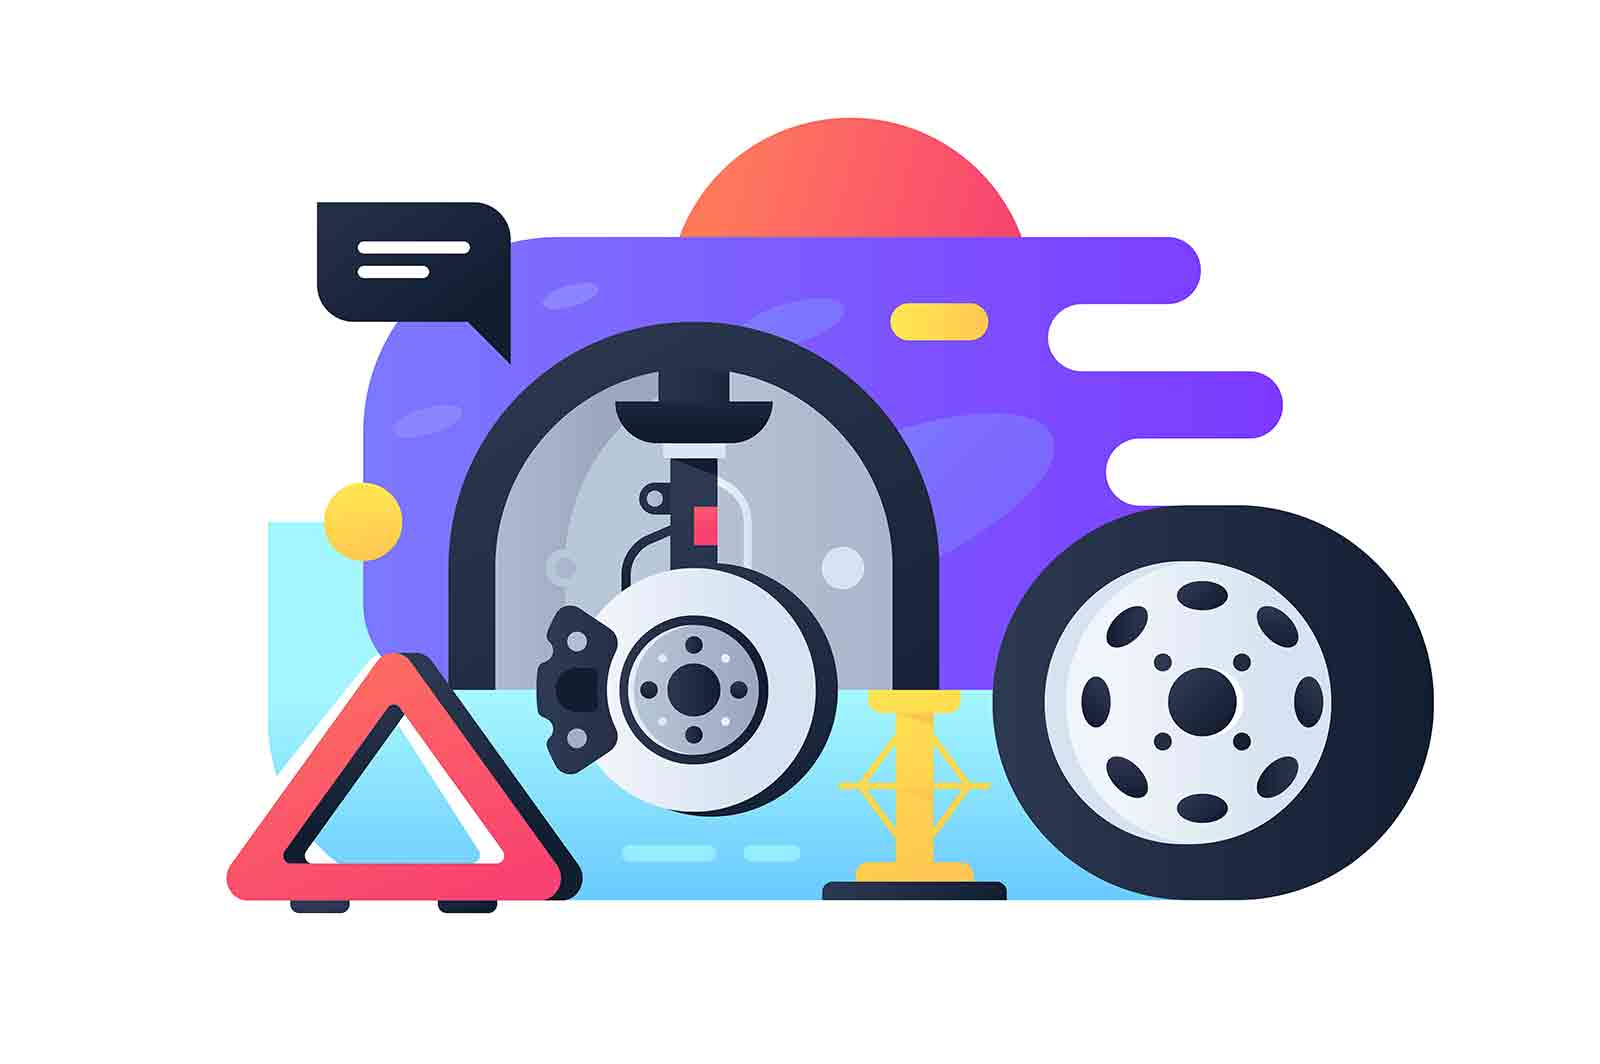 Modern wheel replacement process in car service. Isolated icon concept vehicle repair using jack, warning triangle in online web style.